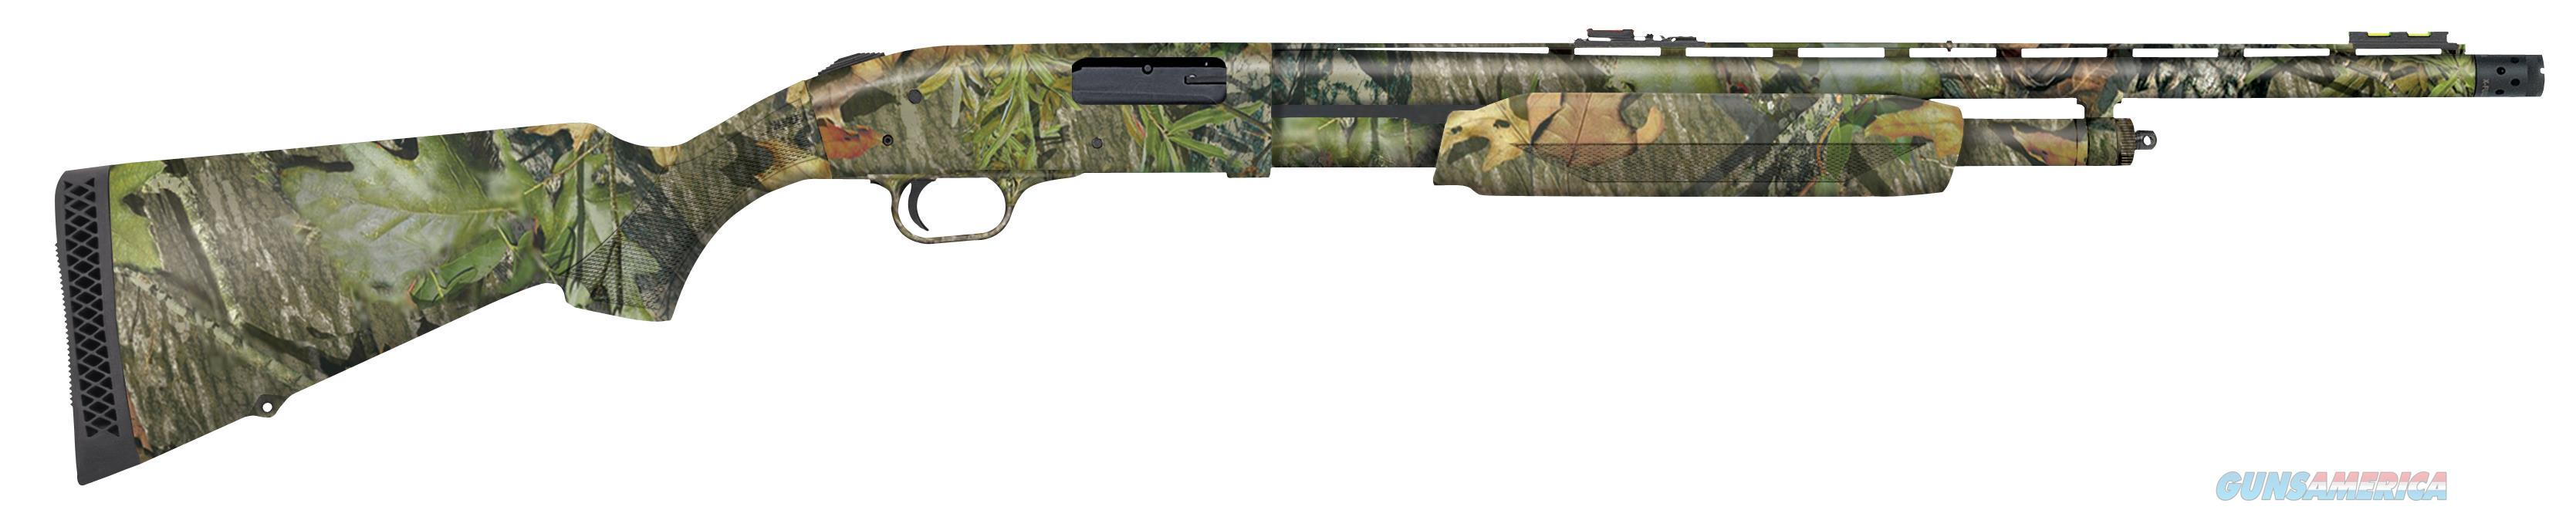 "Mossberg 54339 500 Turkey Pump 20 Gauge 22"" 3"" Mossy Oak Obsession 54339  Guns > Shotguns > MN Misc Shotguns"